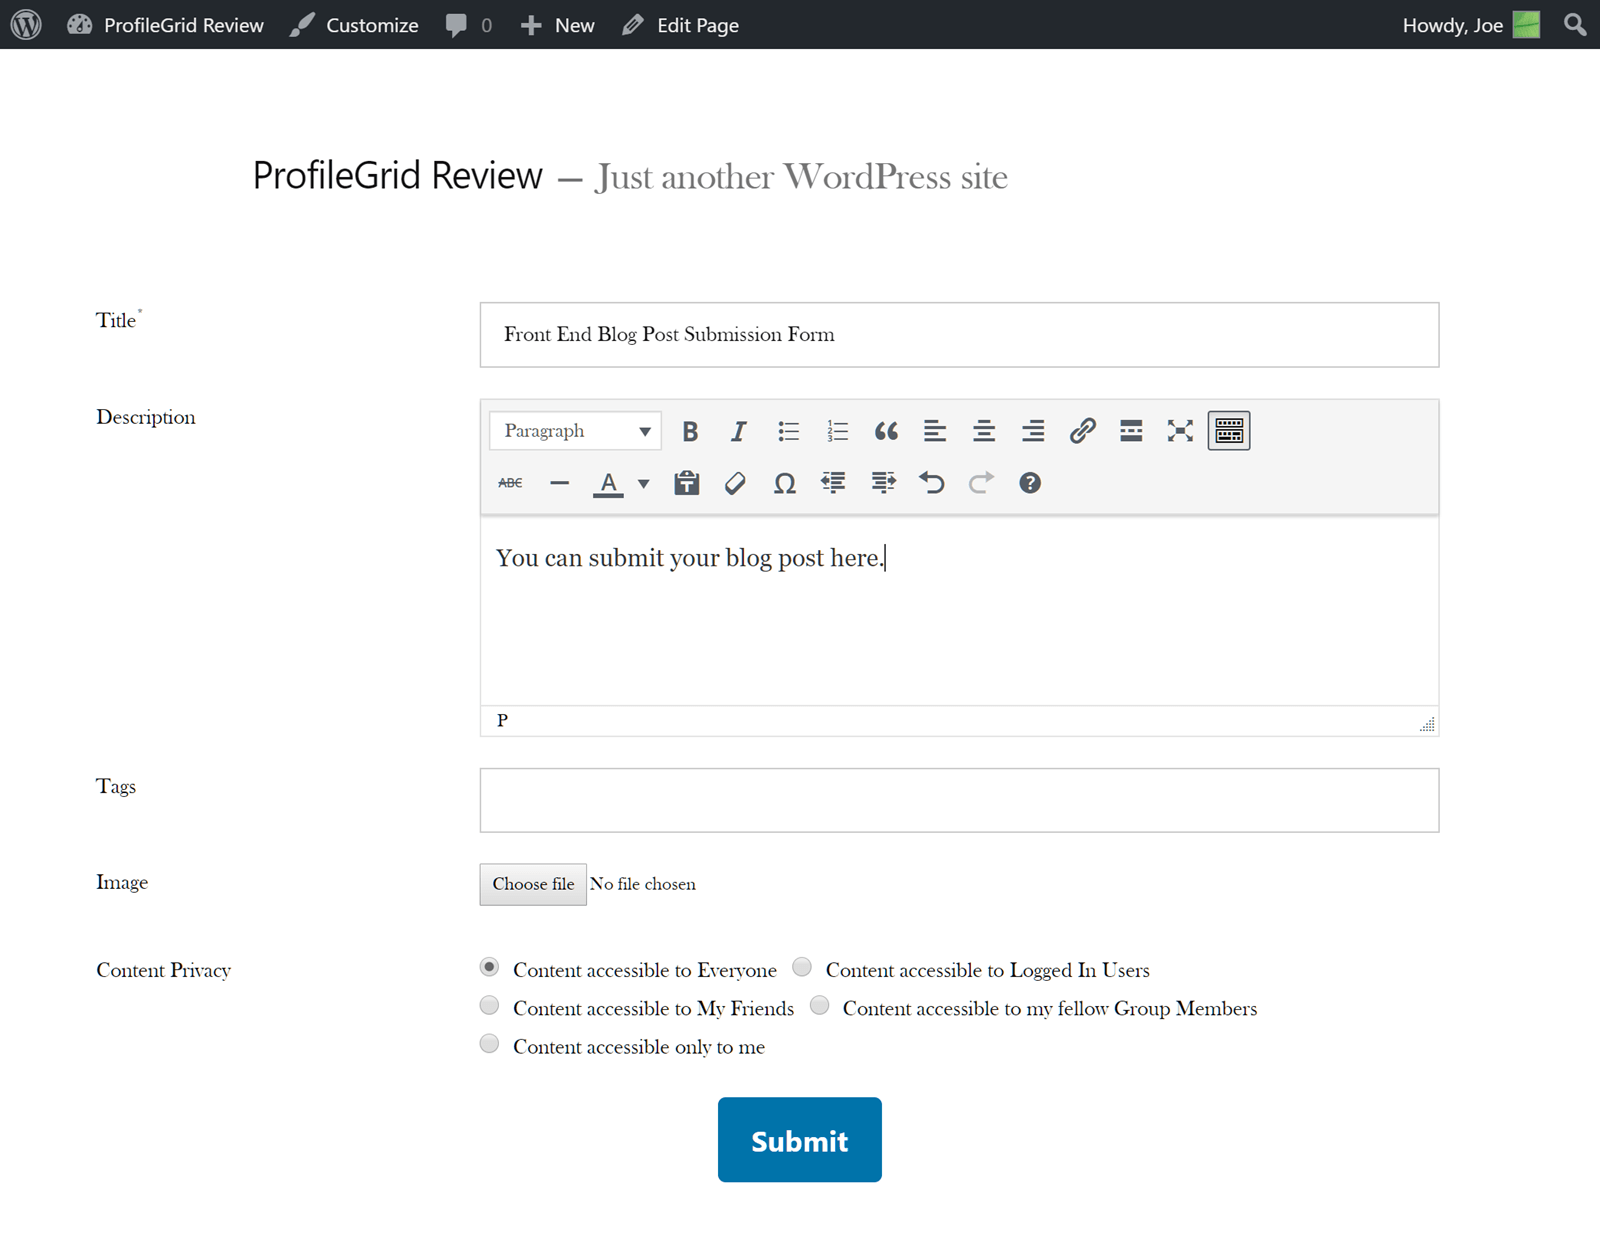 Frontend Post Form